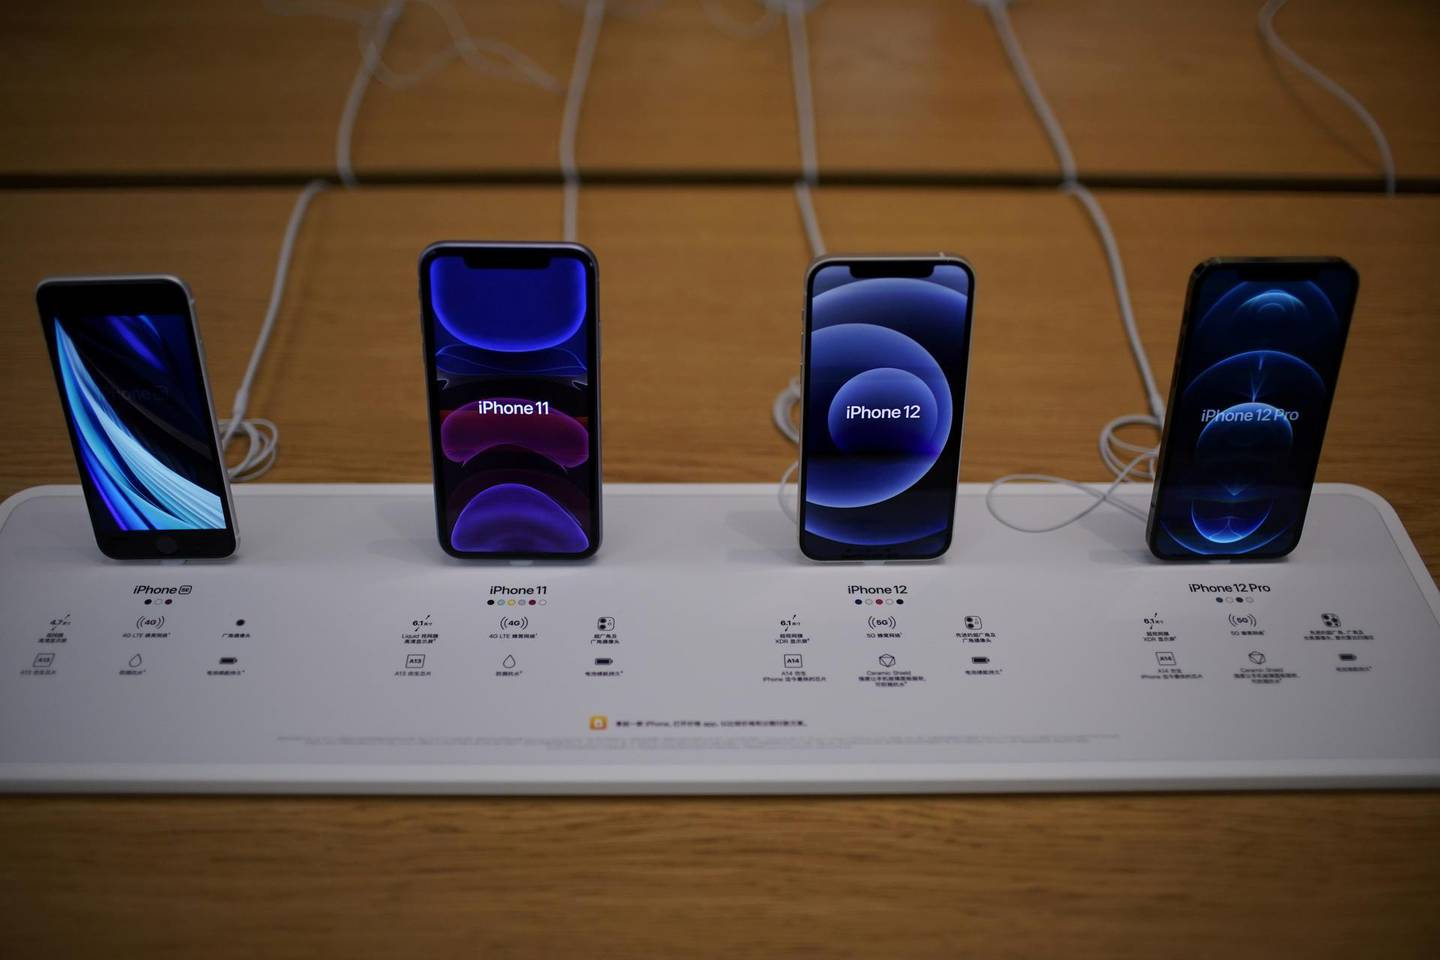 FILE PHOTO: Apple's 5G iPhone 12 and iPhone 11 are seen at an Apple Store, as the coronavirus disease (COVID-19) outbreak continues in Shanghai China October 23, 2020. REUTERS/Aly Song/File Photo